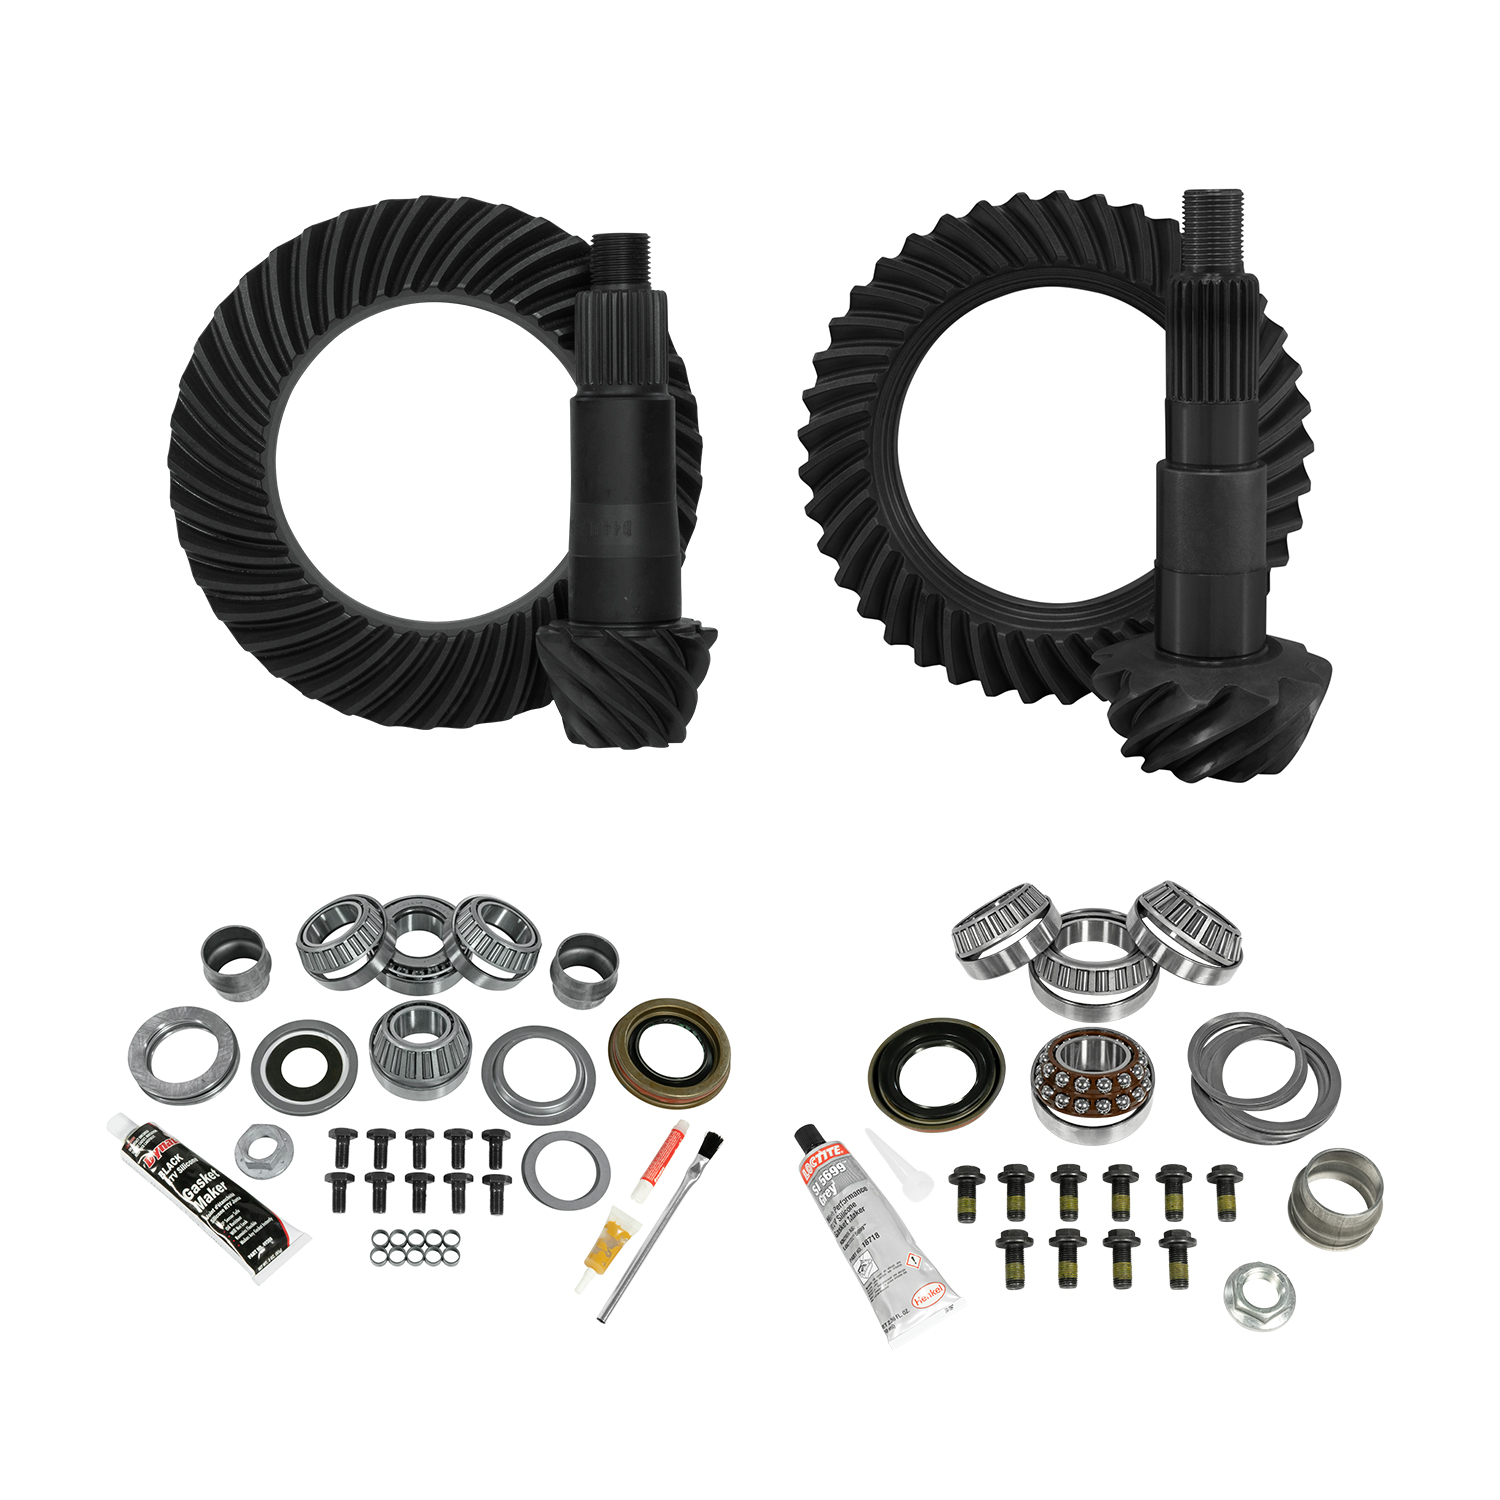 YGK076 - Yukon Complete Gear and Kit Pakage for JL Jeep Non-Rubicon, D44 Rear & D30 Front, 3:73 Gear Ratio